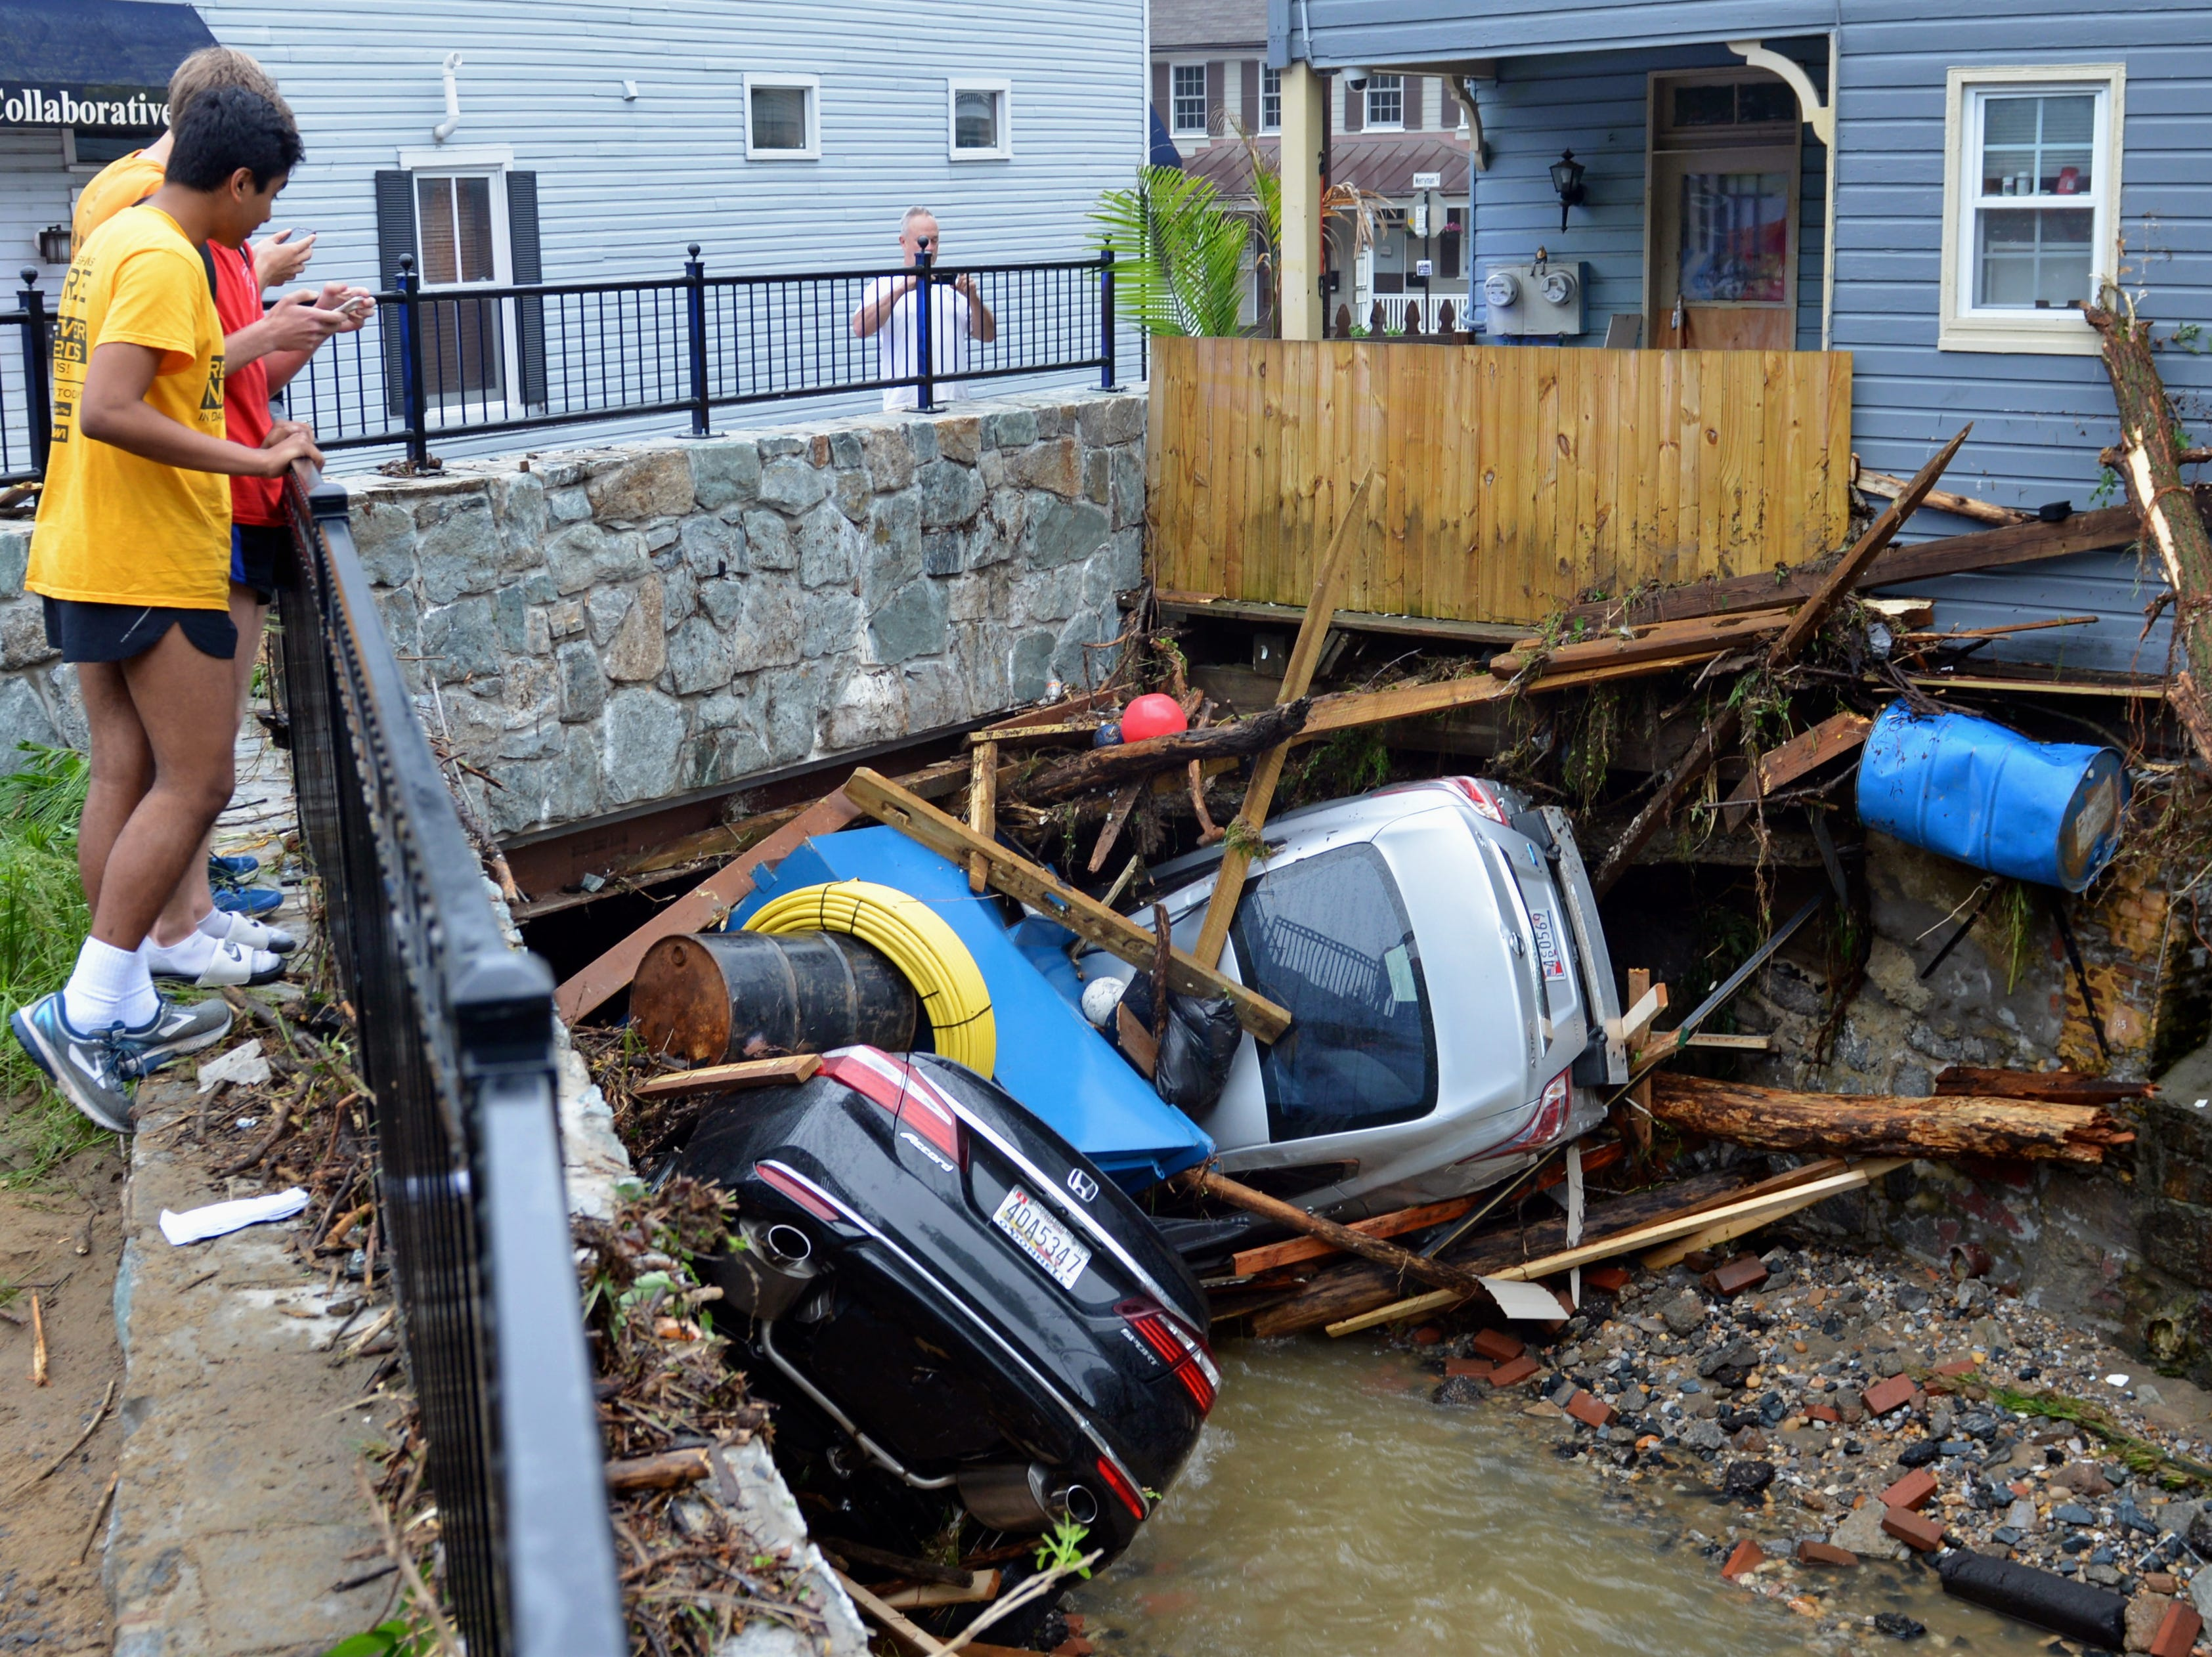 May 28, 2018: Residents gather by a bridge to look at cars left crumpled in one of the tributaries of the Patapsco River that burst its banks as it channeled through historic Main Street in Ellicott City, Md. The destructive flooding left the former mill town heartbroken as it had bounded back from another destructive storm less than two years ago.